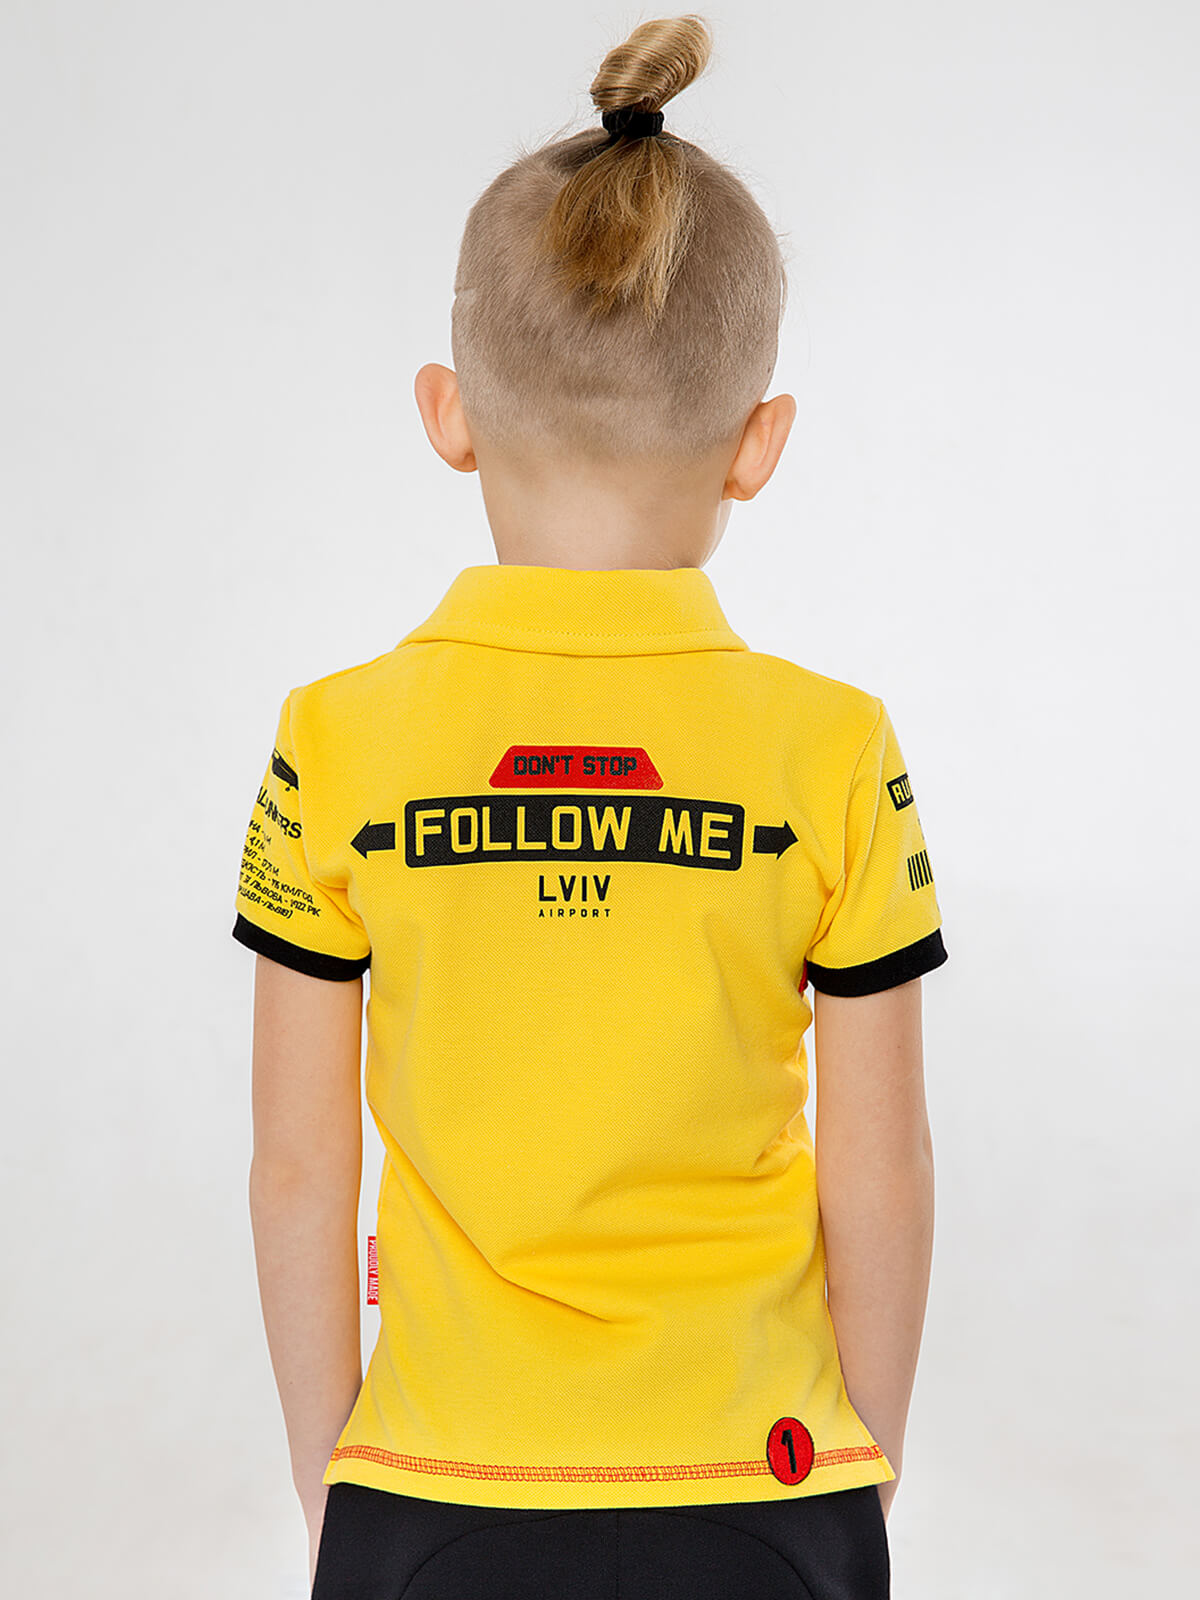 Kids Polo Shirt Follow Me. Color yellow.  Technique of prints applied: embroidery, silkscreen printing.